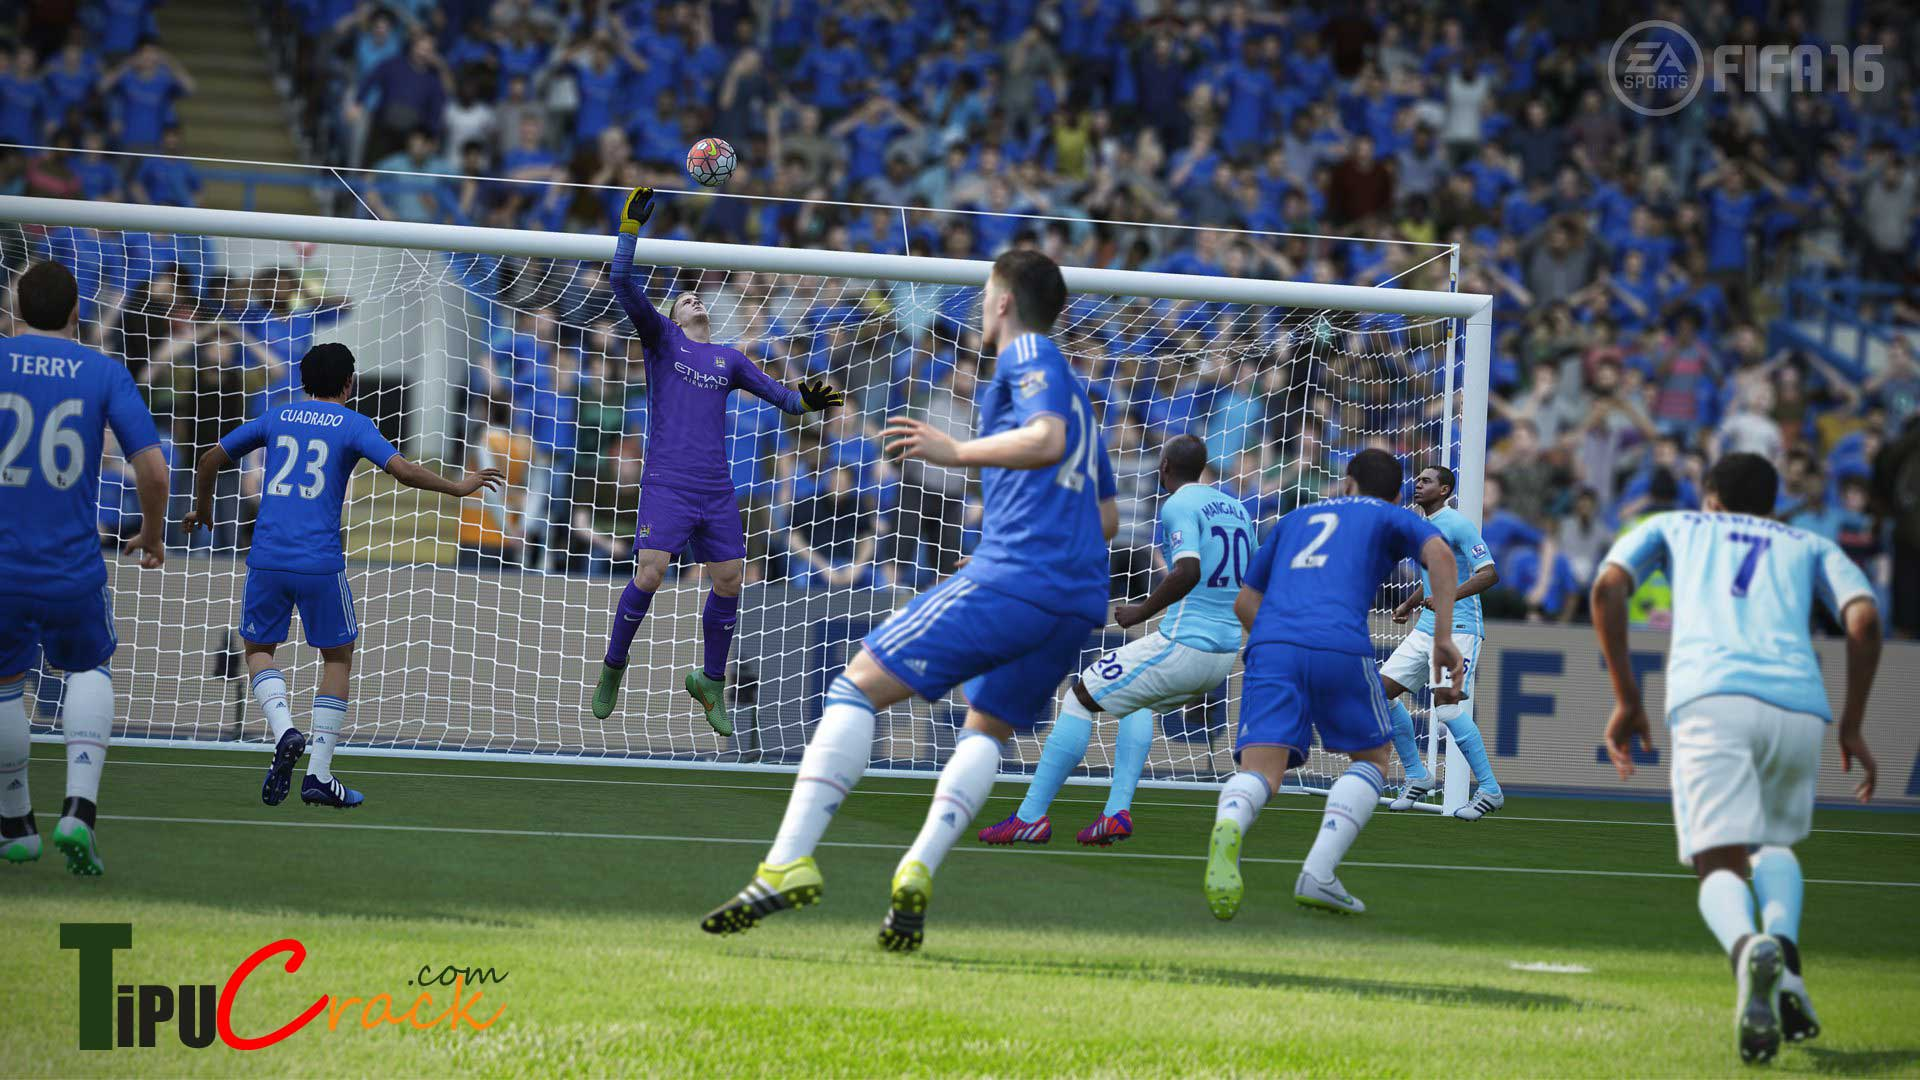 Ea Sports Fifa 16 Crack Full Latest Version Download